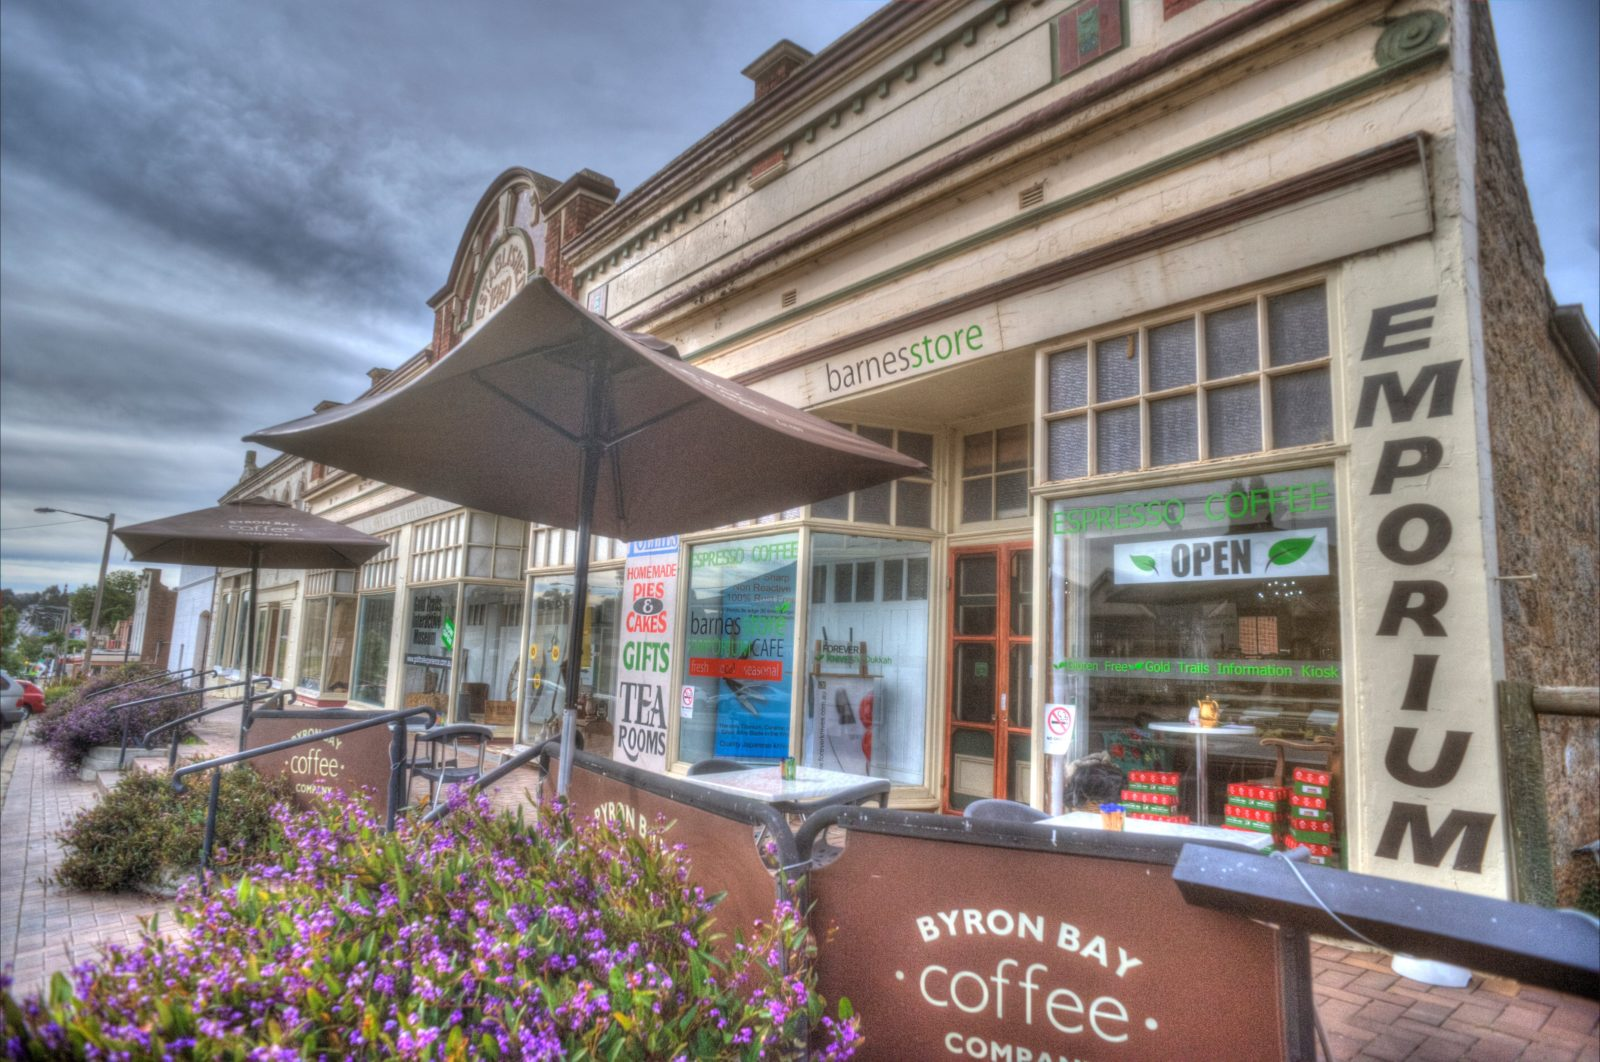 Barnes Store Cafe - Murrumburrah